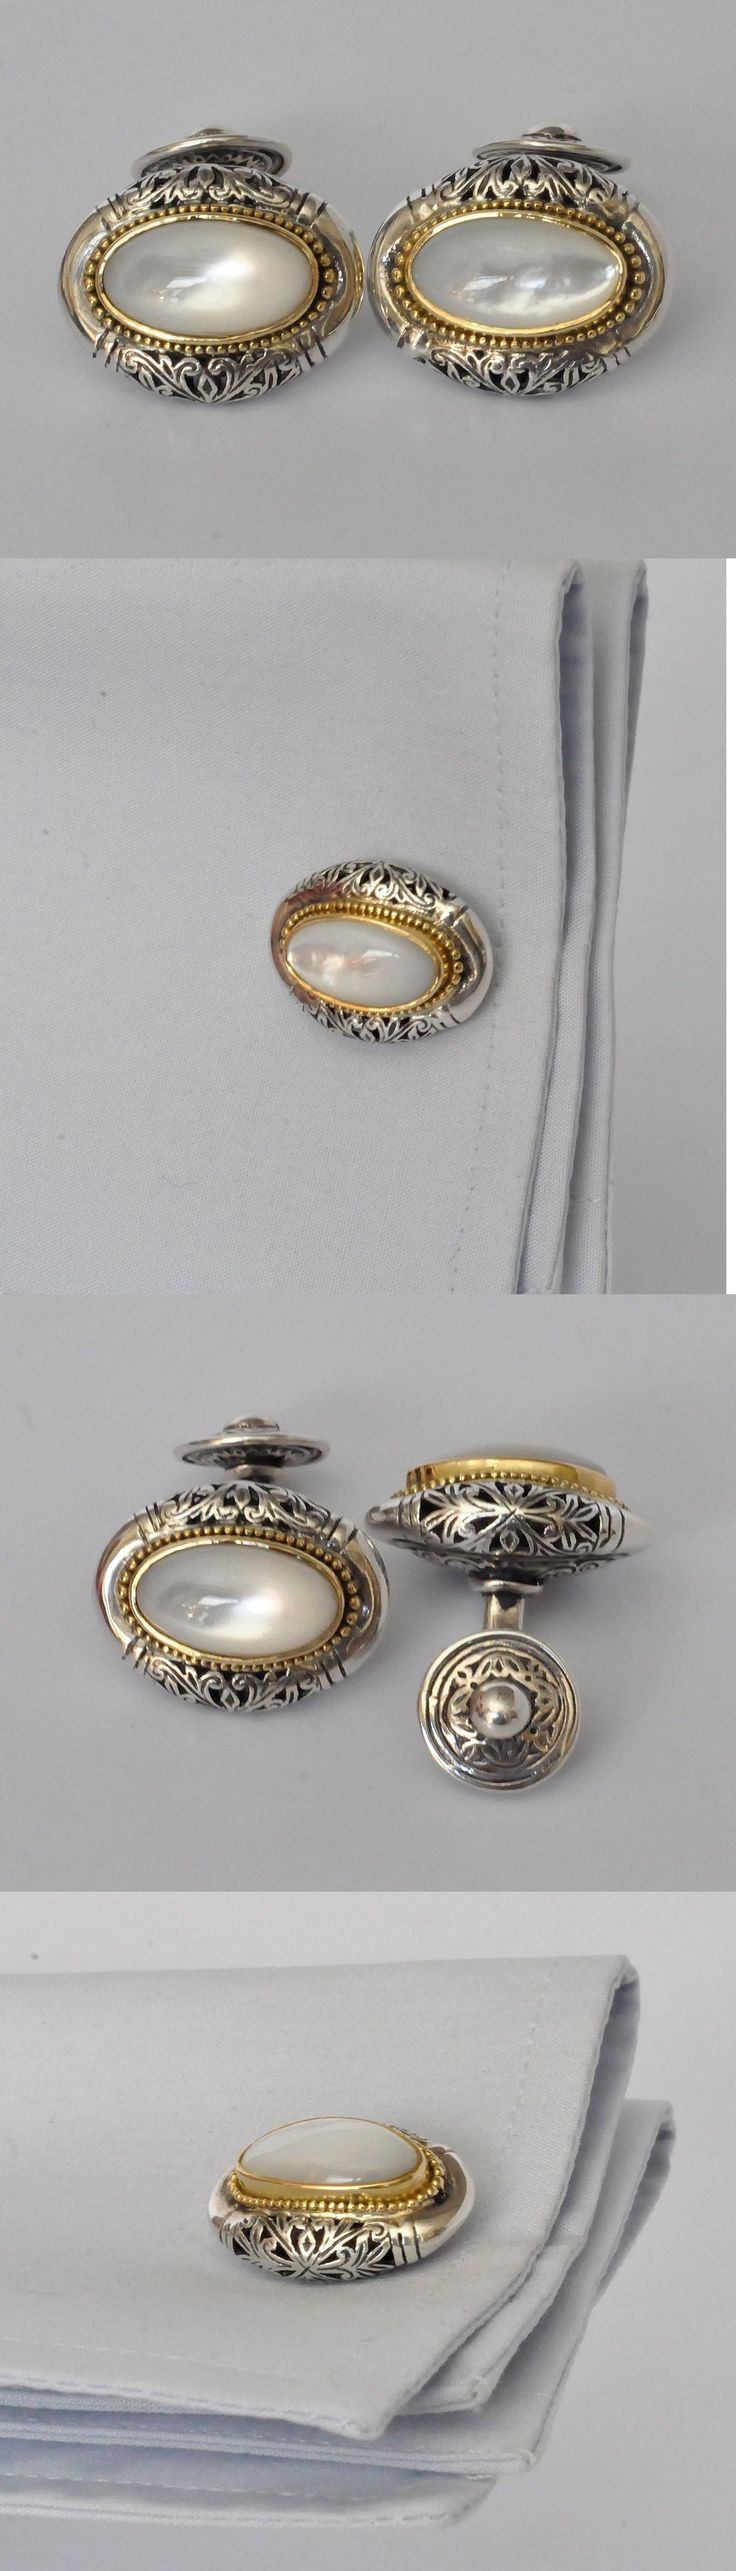 Cufflinks 137843: Konstantino Cufflinks Oval Mother Of Pearl 18K Yellow Gold Sterling Silver New -> BUY IT NOW ONLY: $760 on eBay!